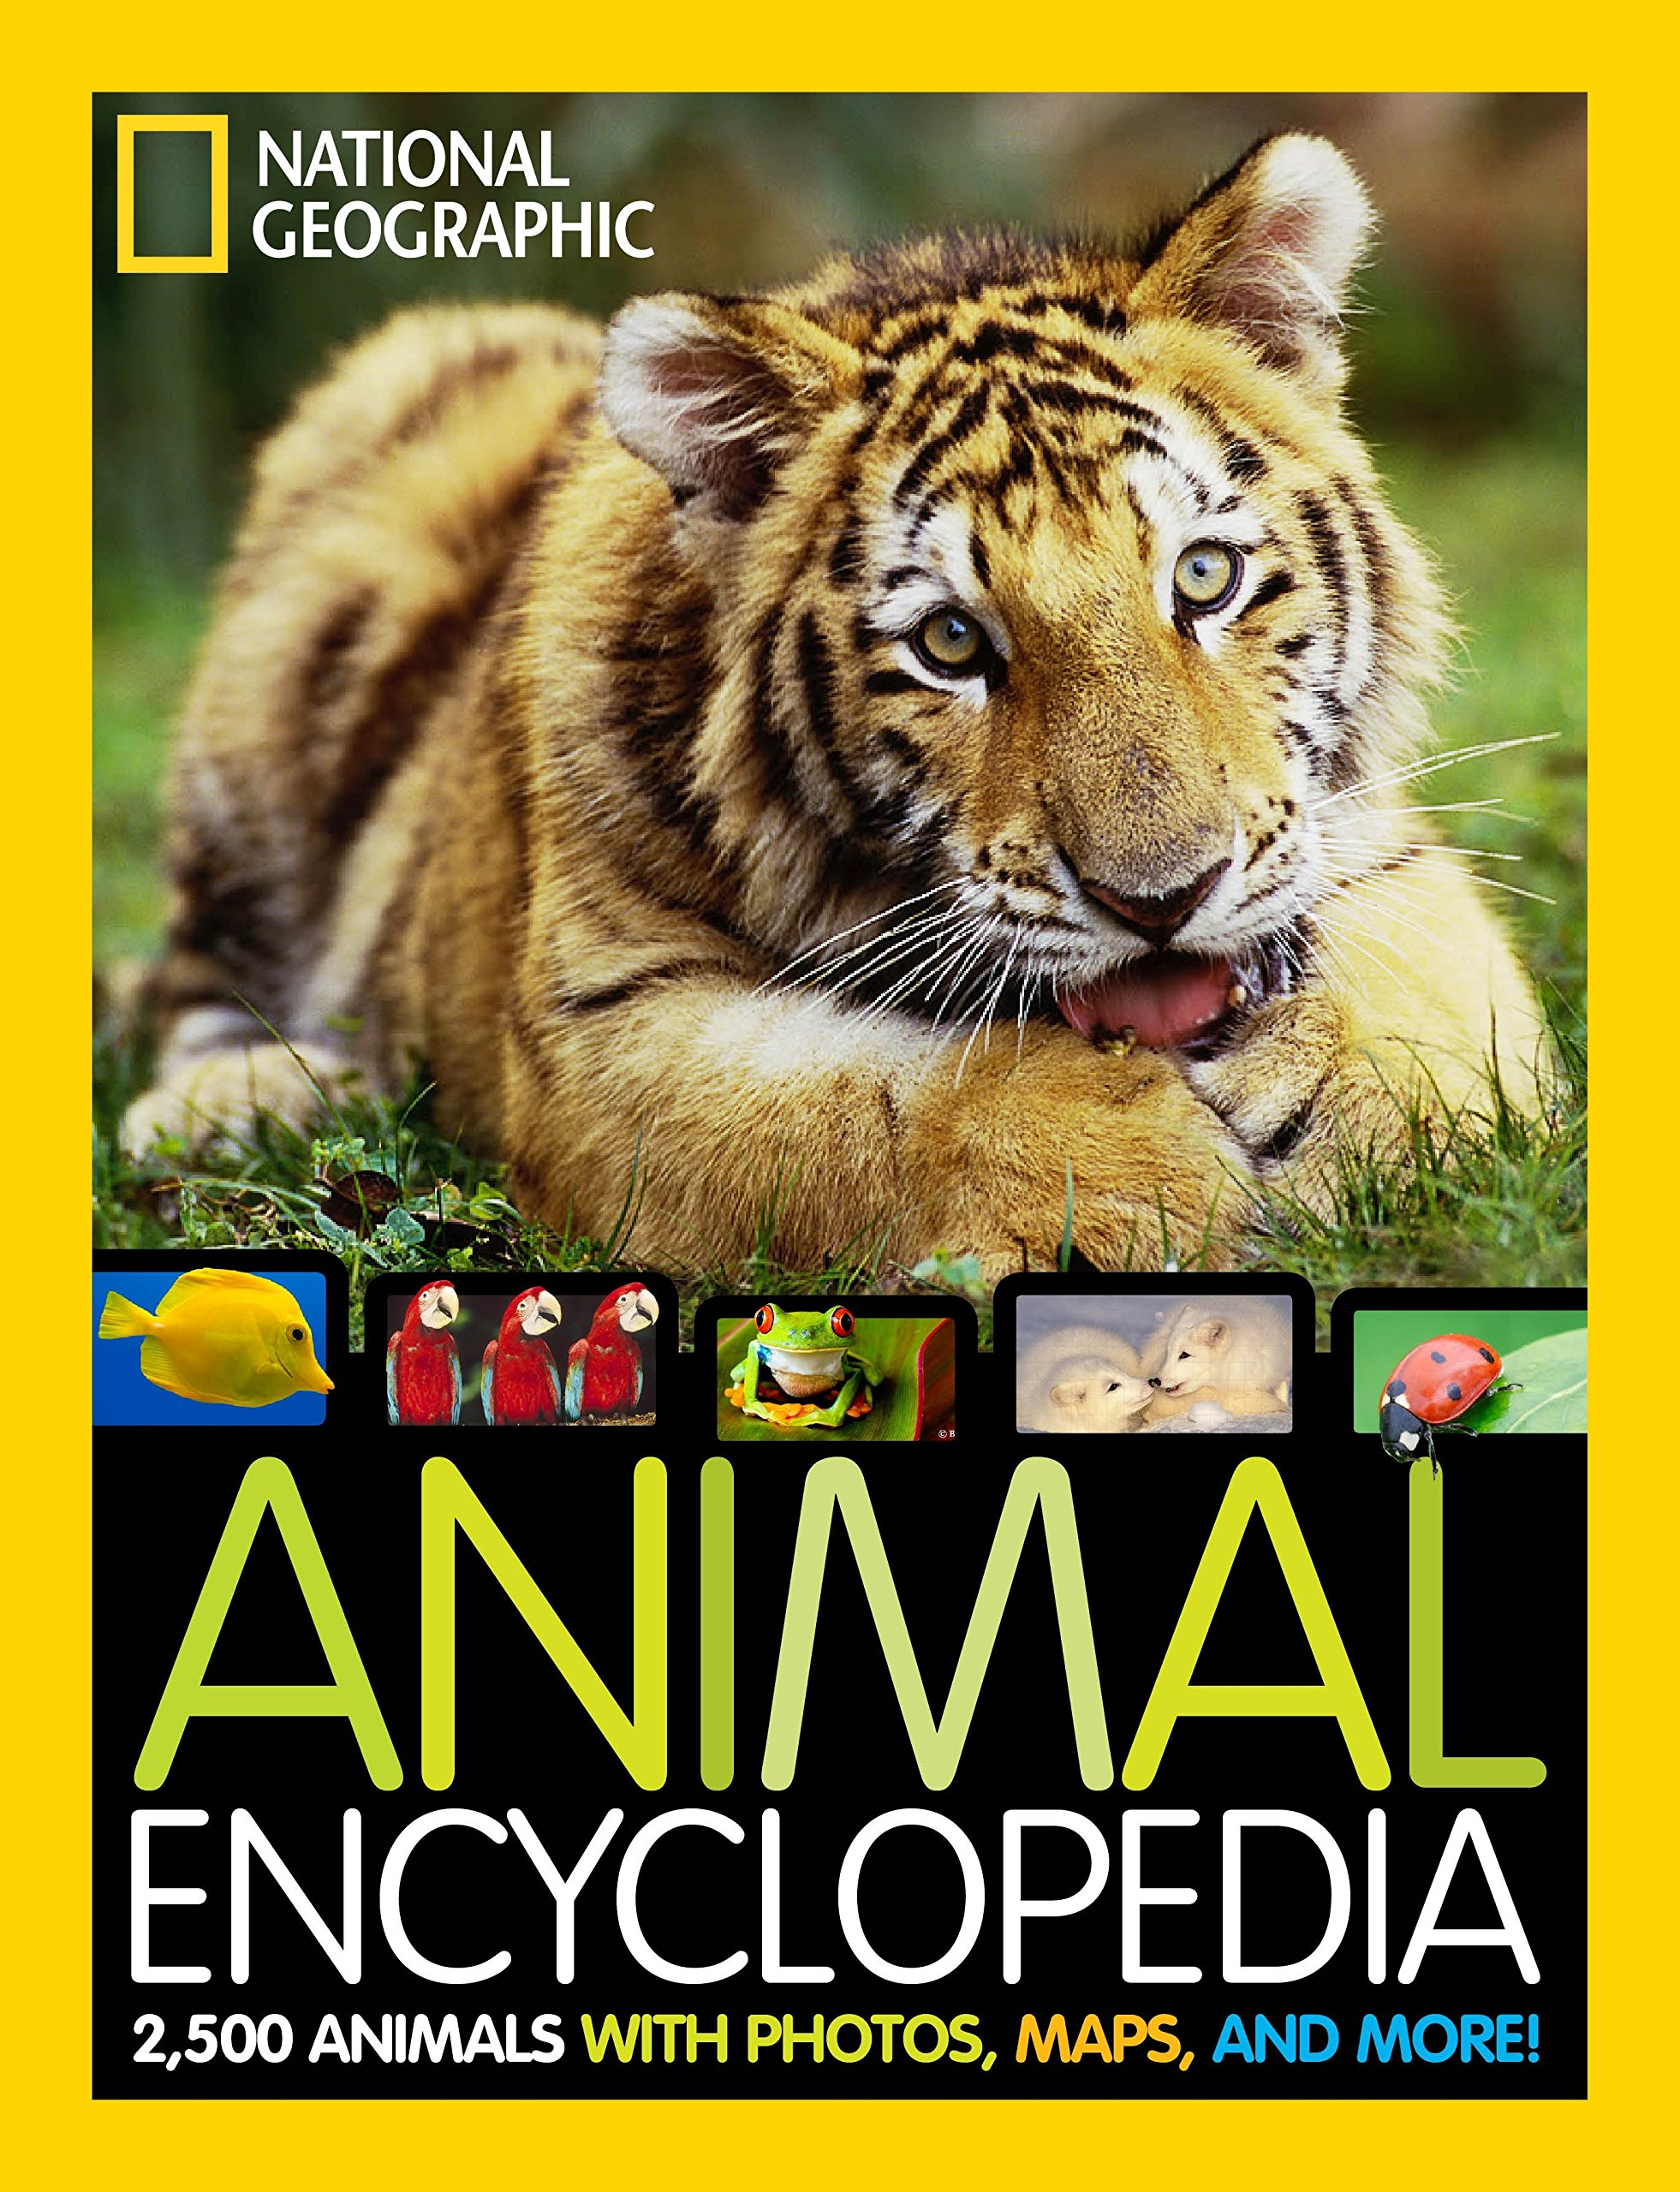 National Geographic Animal Encyclopedia  2500 Animals With Photos Maps And More   Encyclopaedia